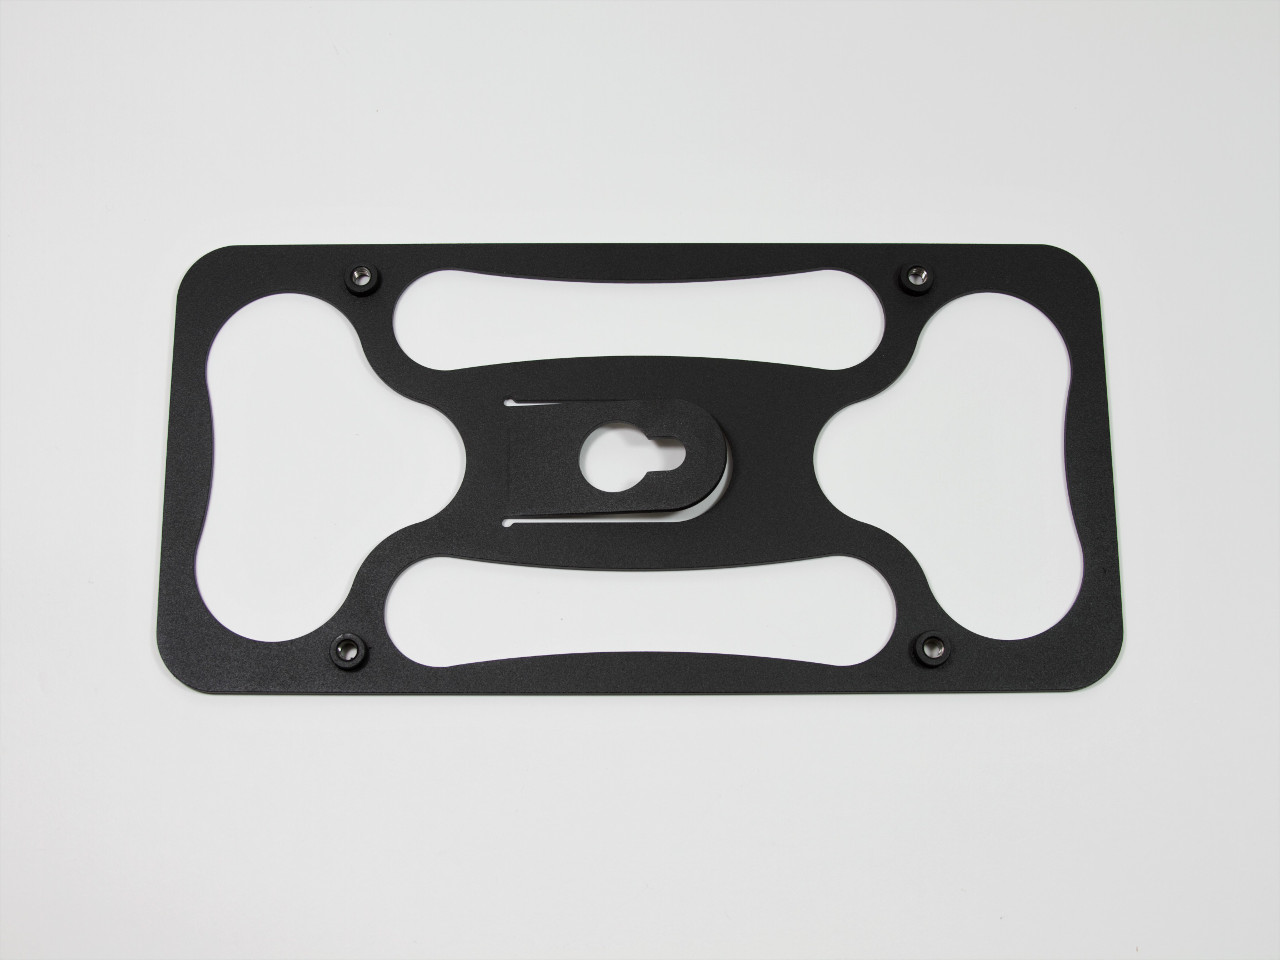 Thumbnail image for The Platypus License Plate Mount for 2019-2020 BMW X5 backplate